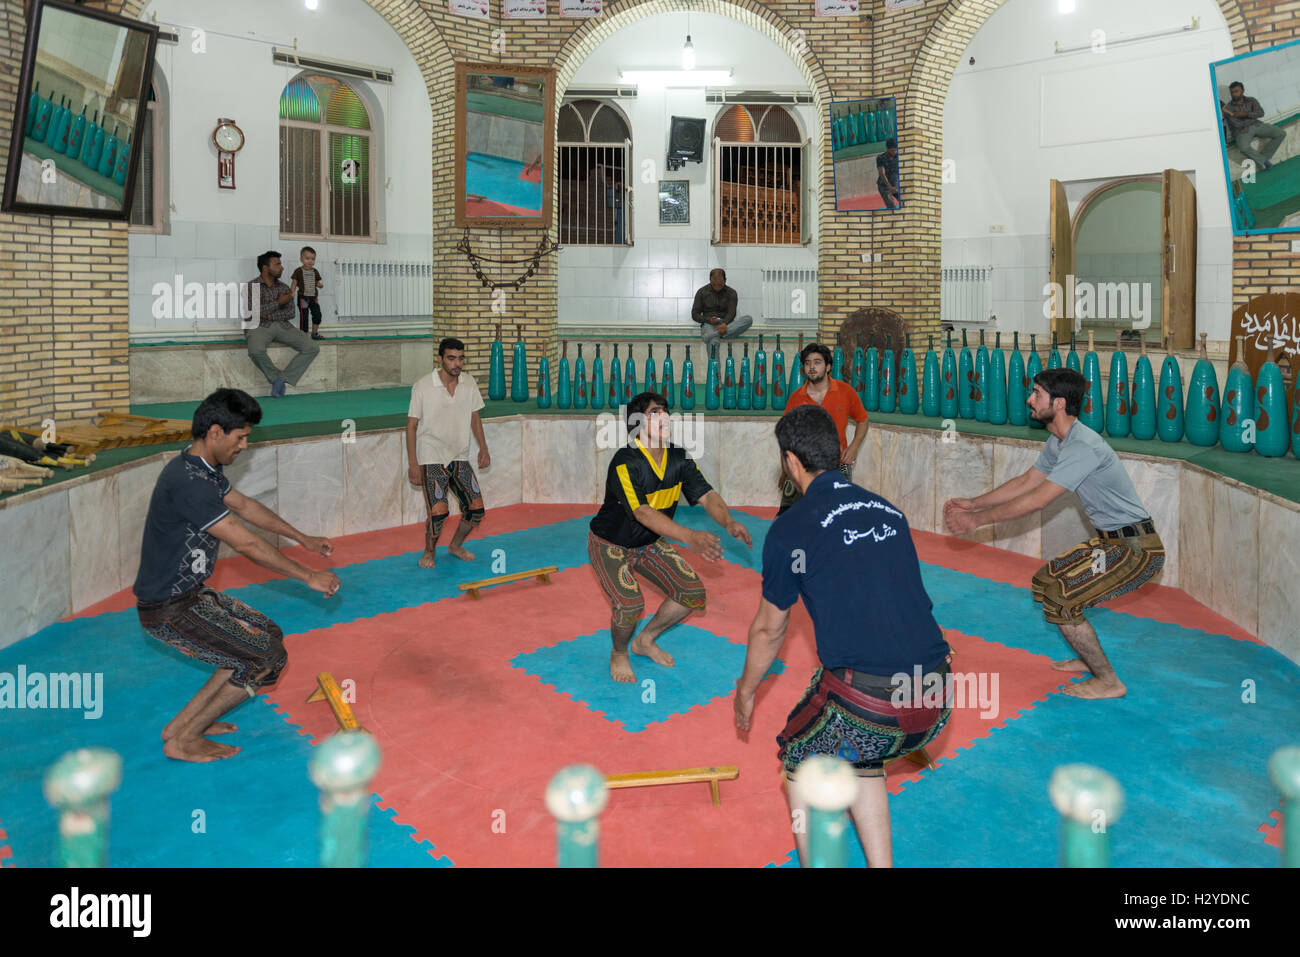 Meybod, The Local Zurkhaneh (Zoorkhaneh), Pahlevans Practising After The Evening Prayer - Stock Image